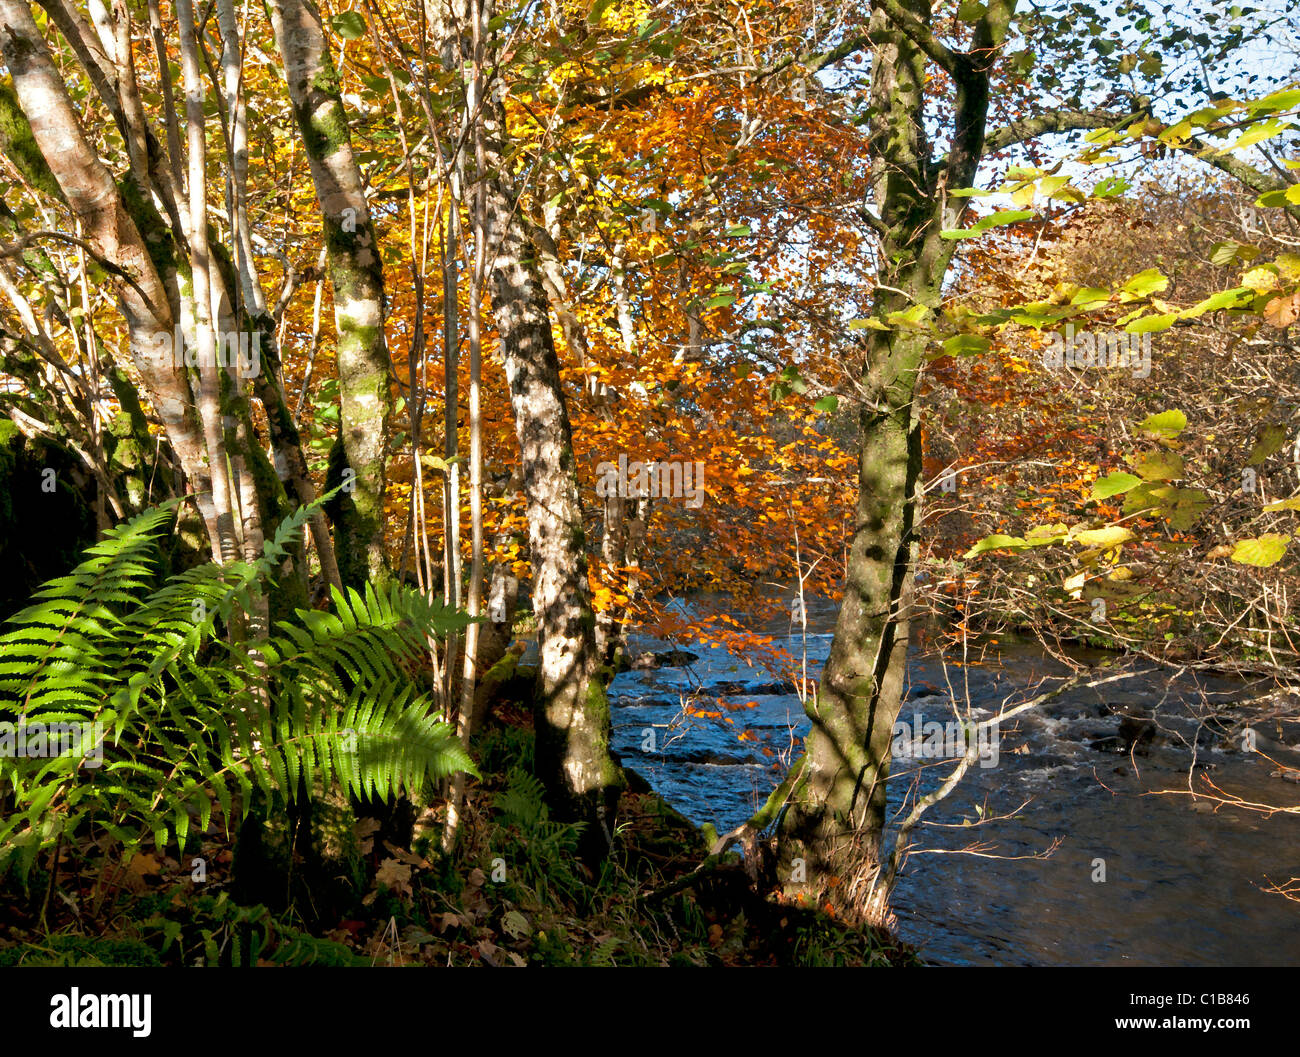 Rich Autumn colours of a riverside habitat with Beech, ferns Alder and blue reflection on water - Stock Image